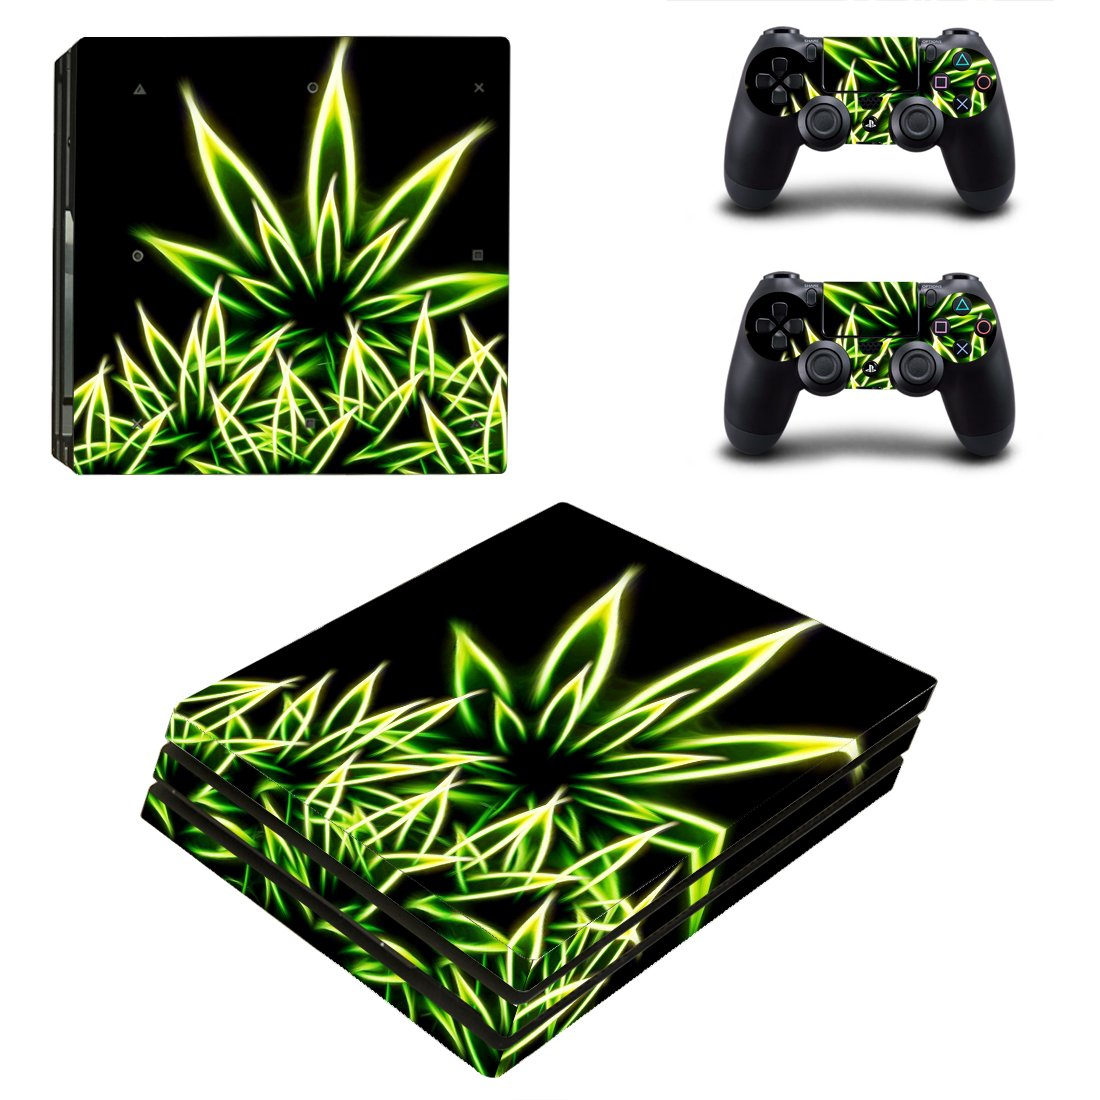 Weed PS4 Pro Skin Sticker Wrap